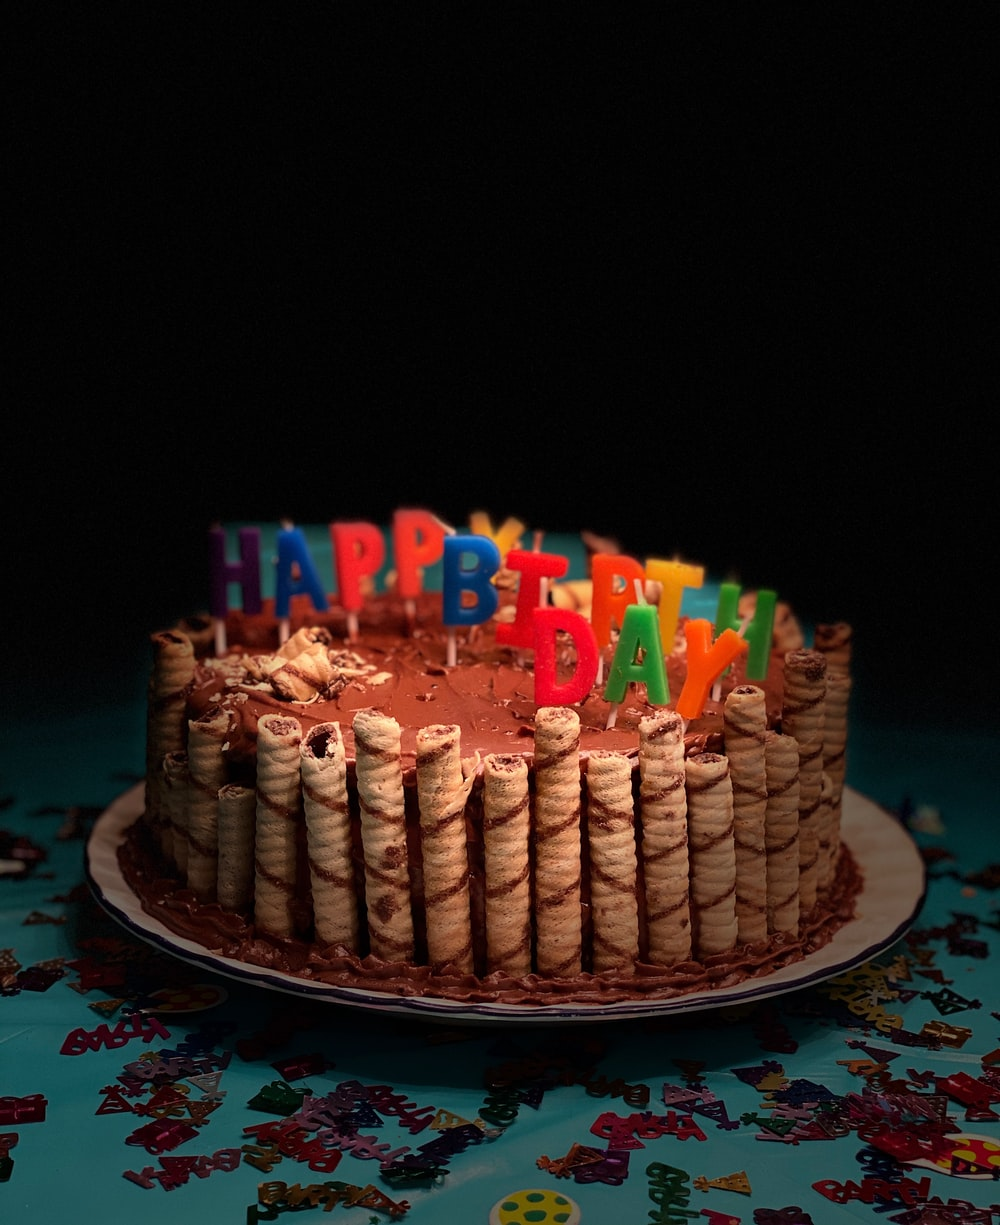 Happy Birthday Cake With Happy Birthday Candles Photo Free Image On Unsplash